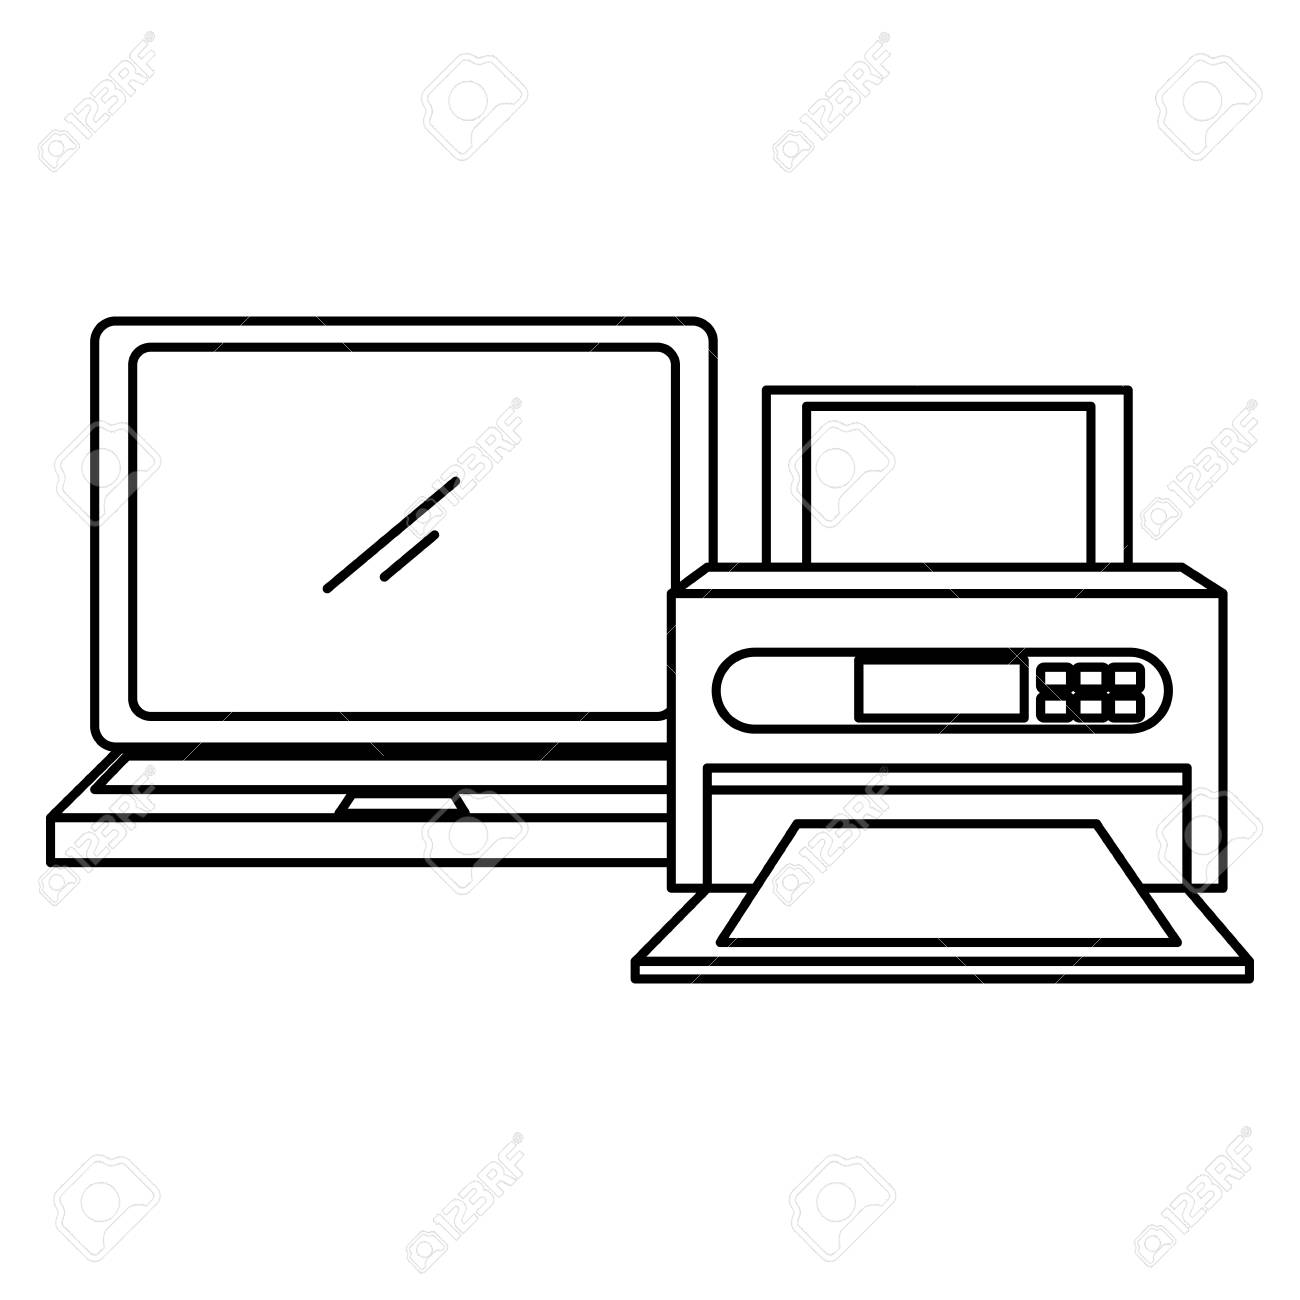 laptop computer with printer vector illustration design royalty free cliparts vectors and stock illustration image 112384690 123rf com